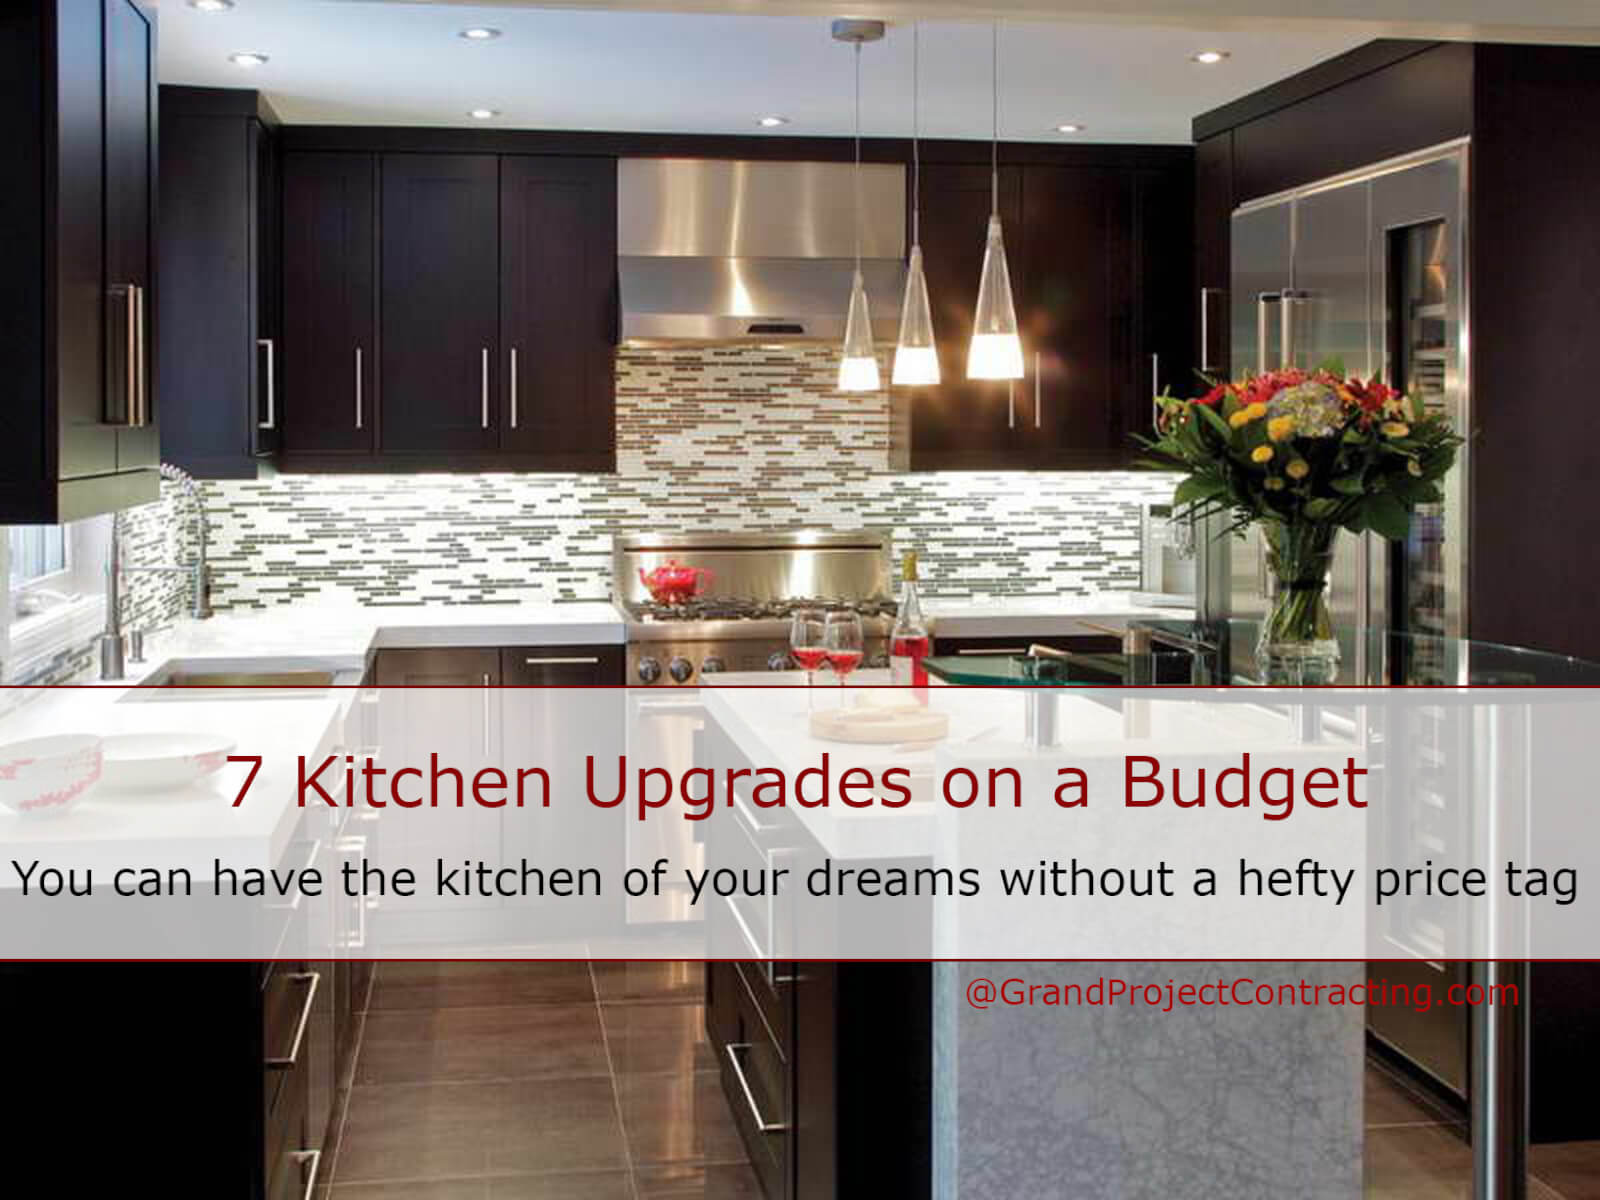 7 kitchen upgrades on a budget grand project contracting for Kitchen upgrades on a budget